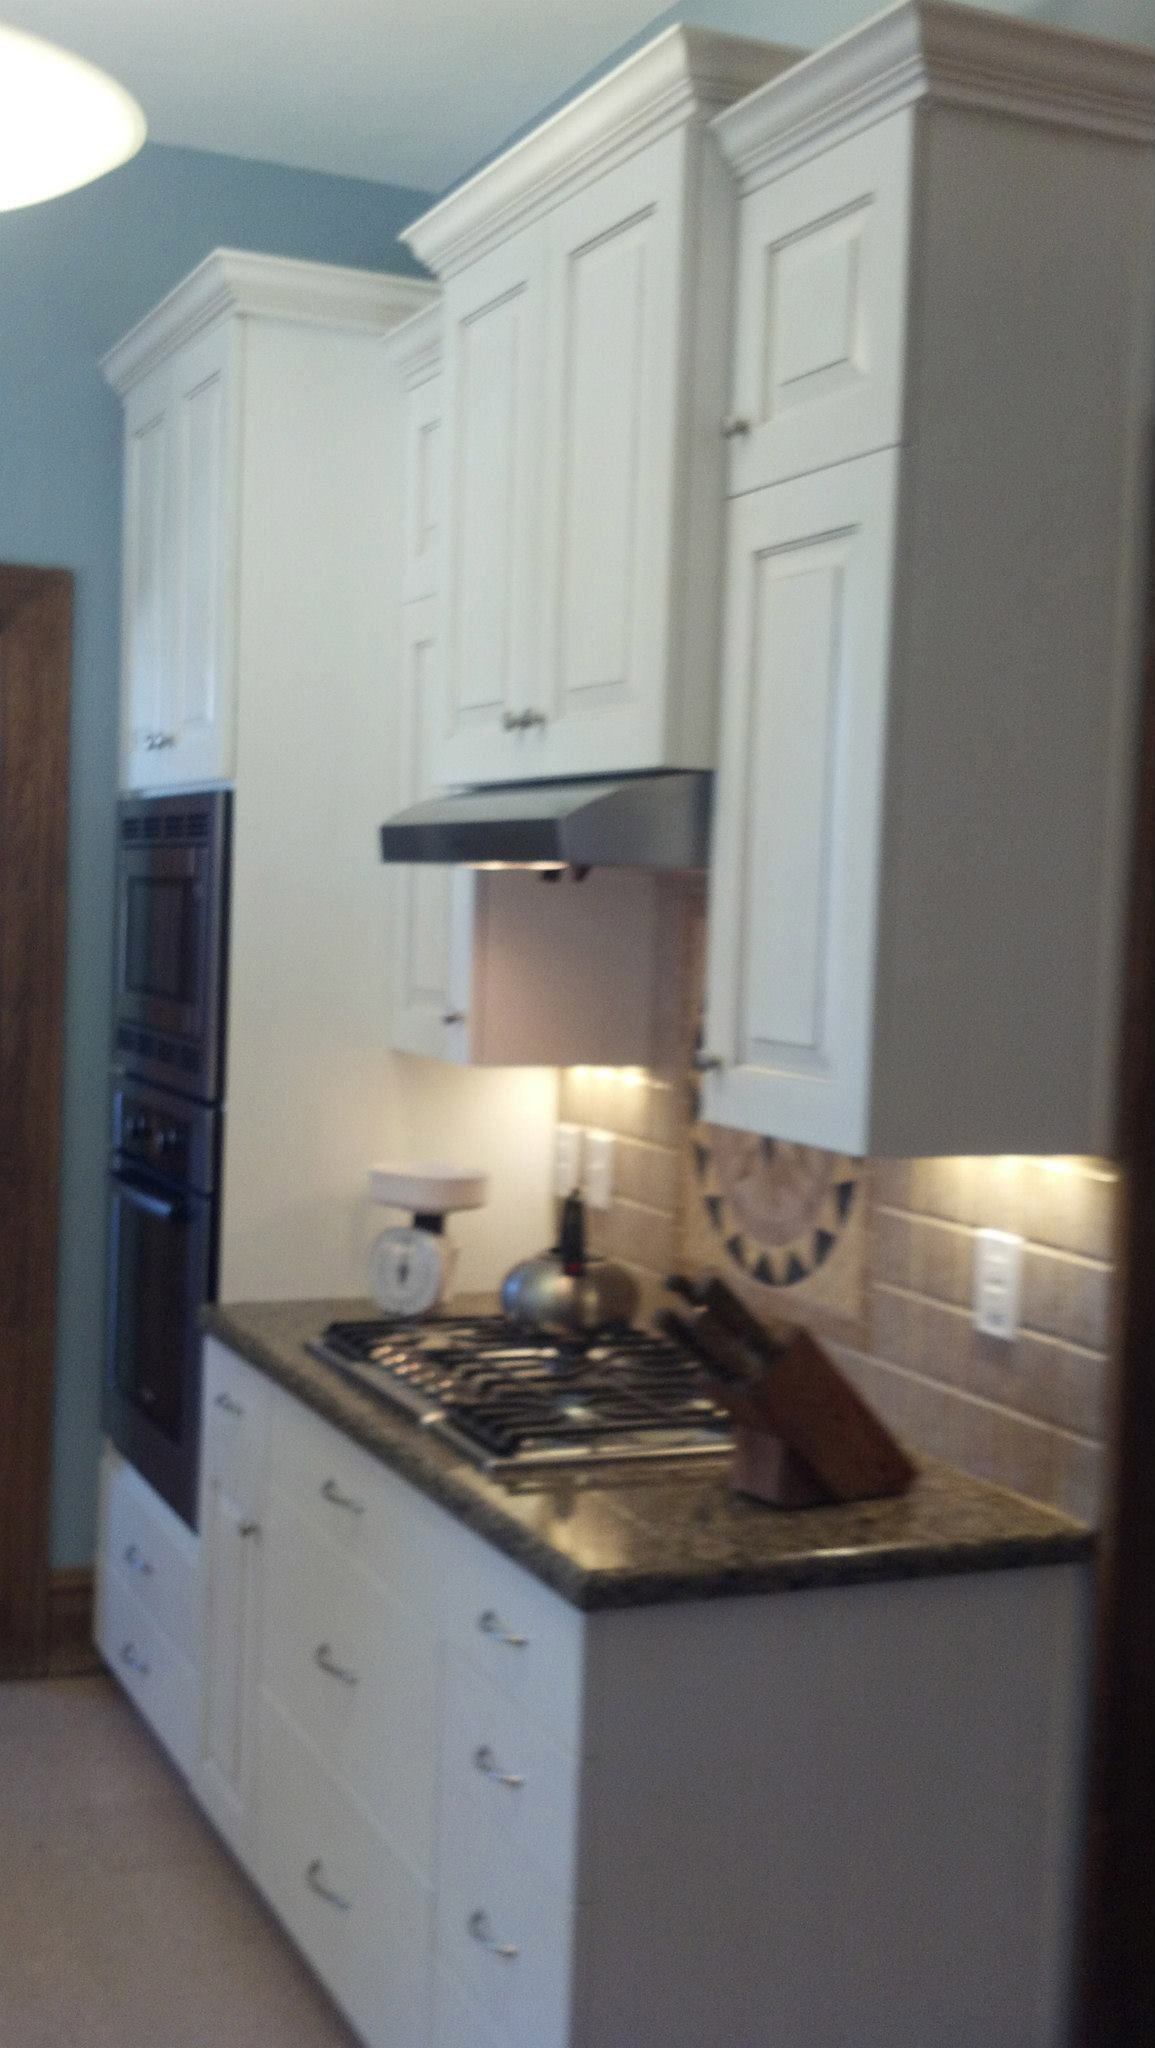 Stainless Steel Under Cabinet Proline Range Hood Install By Ivy League  Builders.